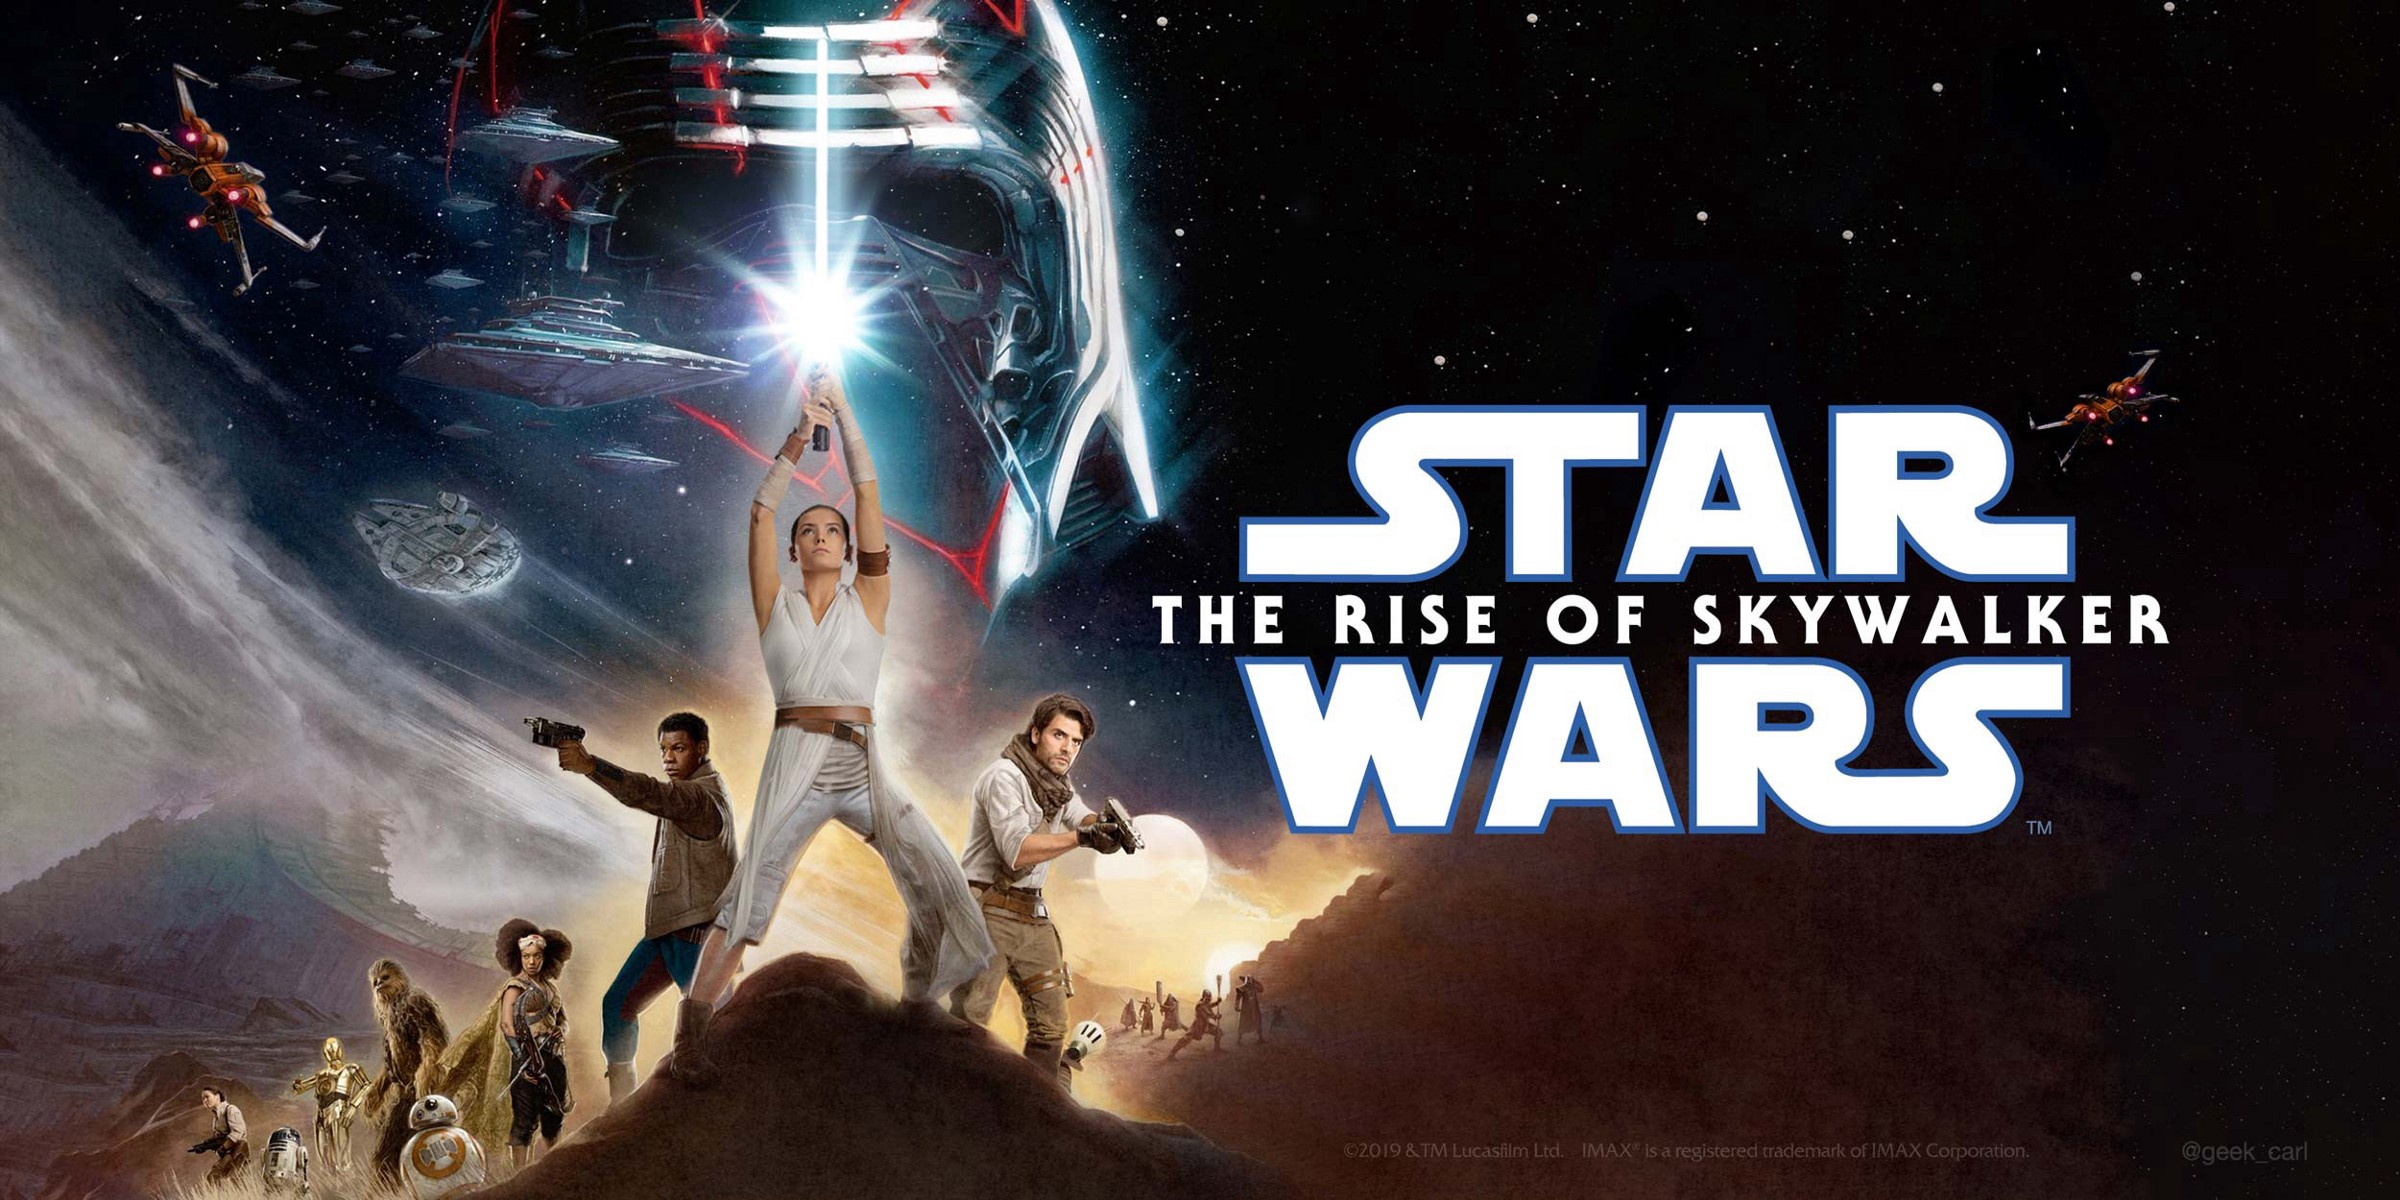 Watch Star Wars Episode Ix The Rise Of Skywalker 2019 Download By Star Wars Episode Ix The Rise Of Skywalker 2019 Medium